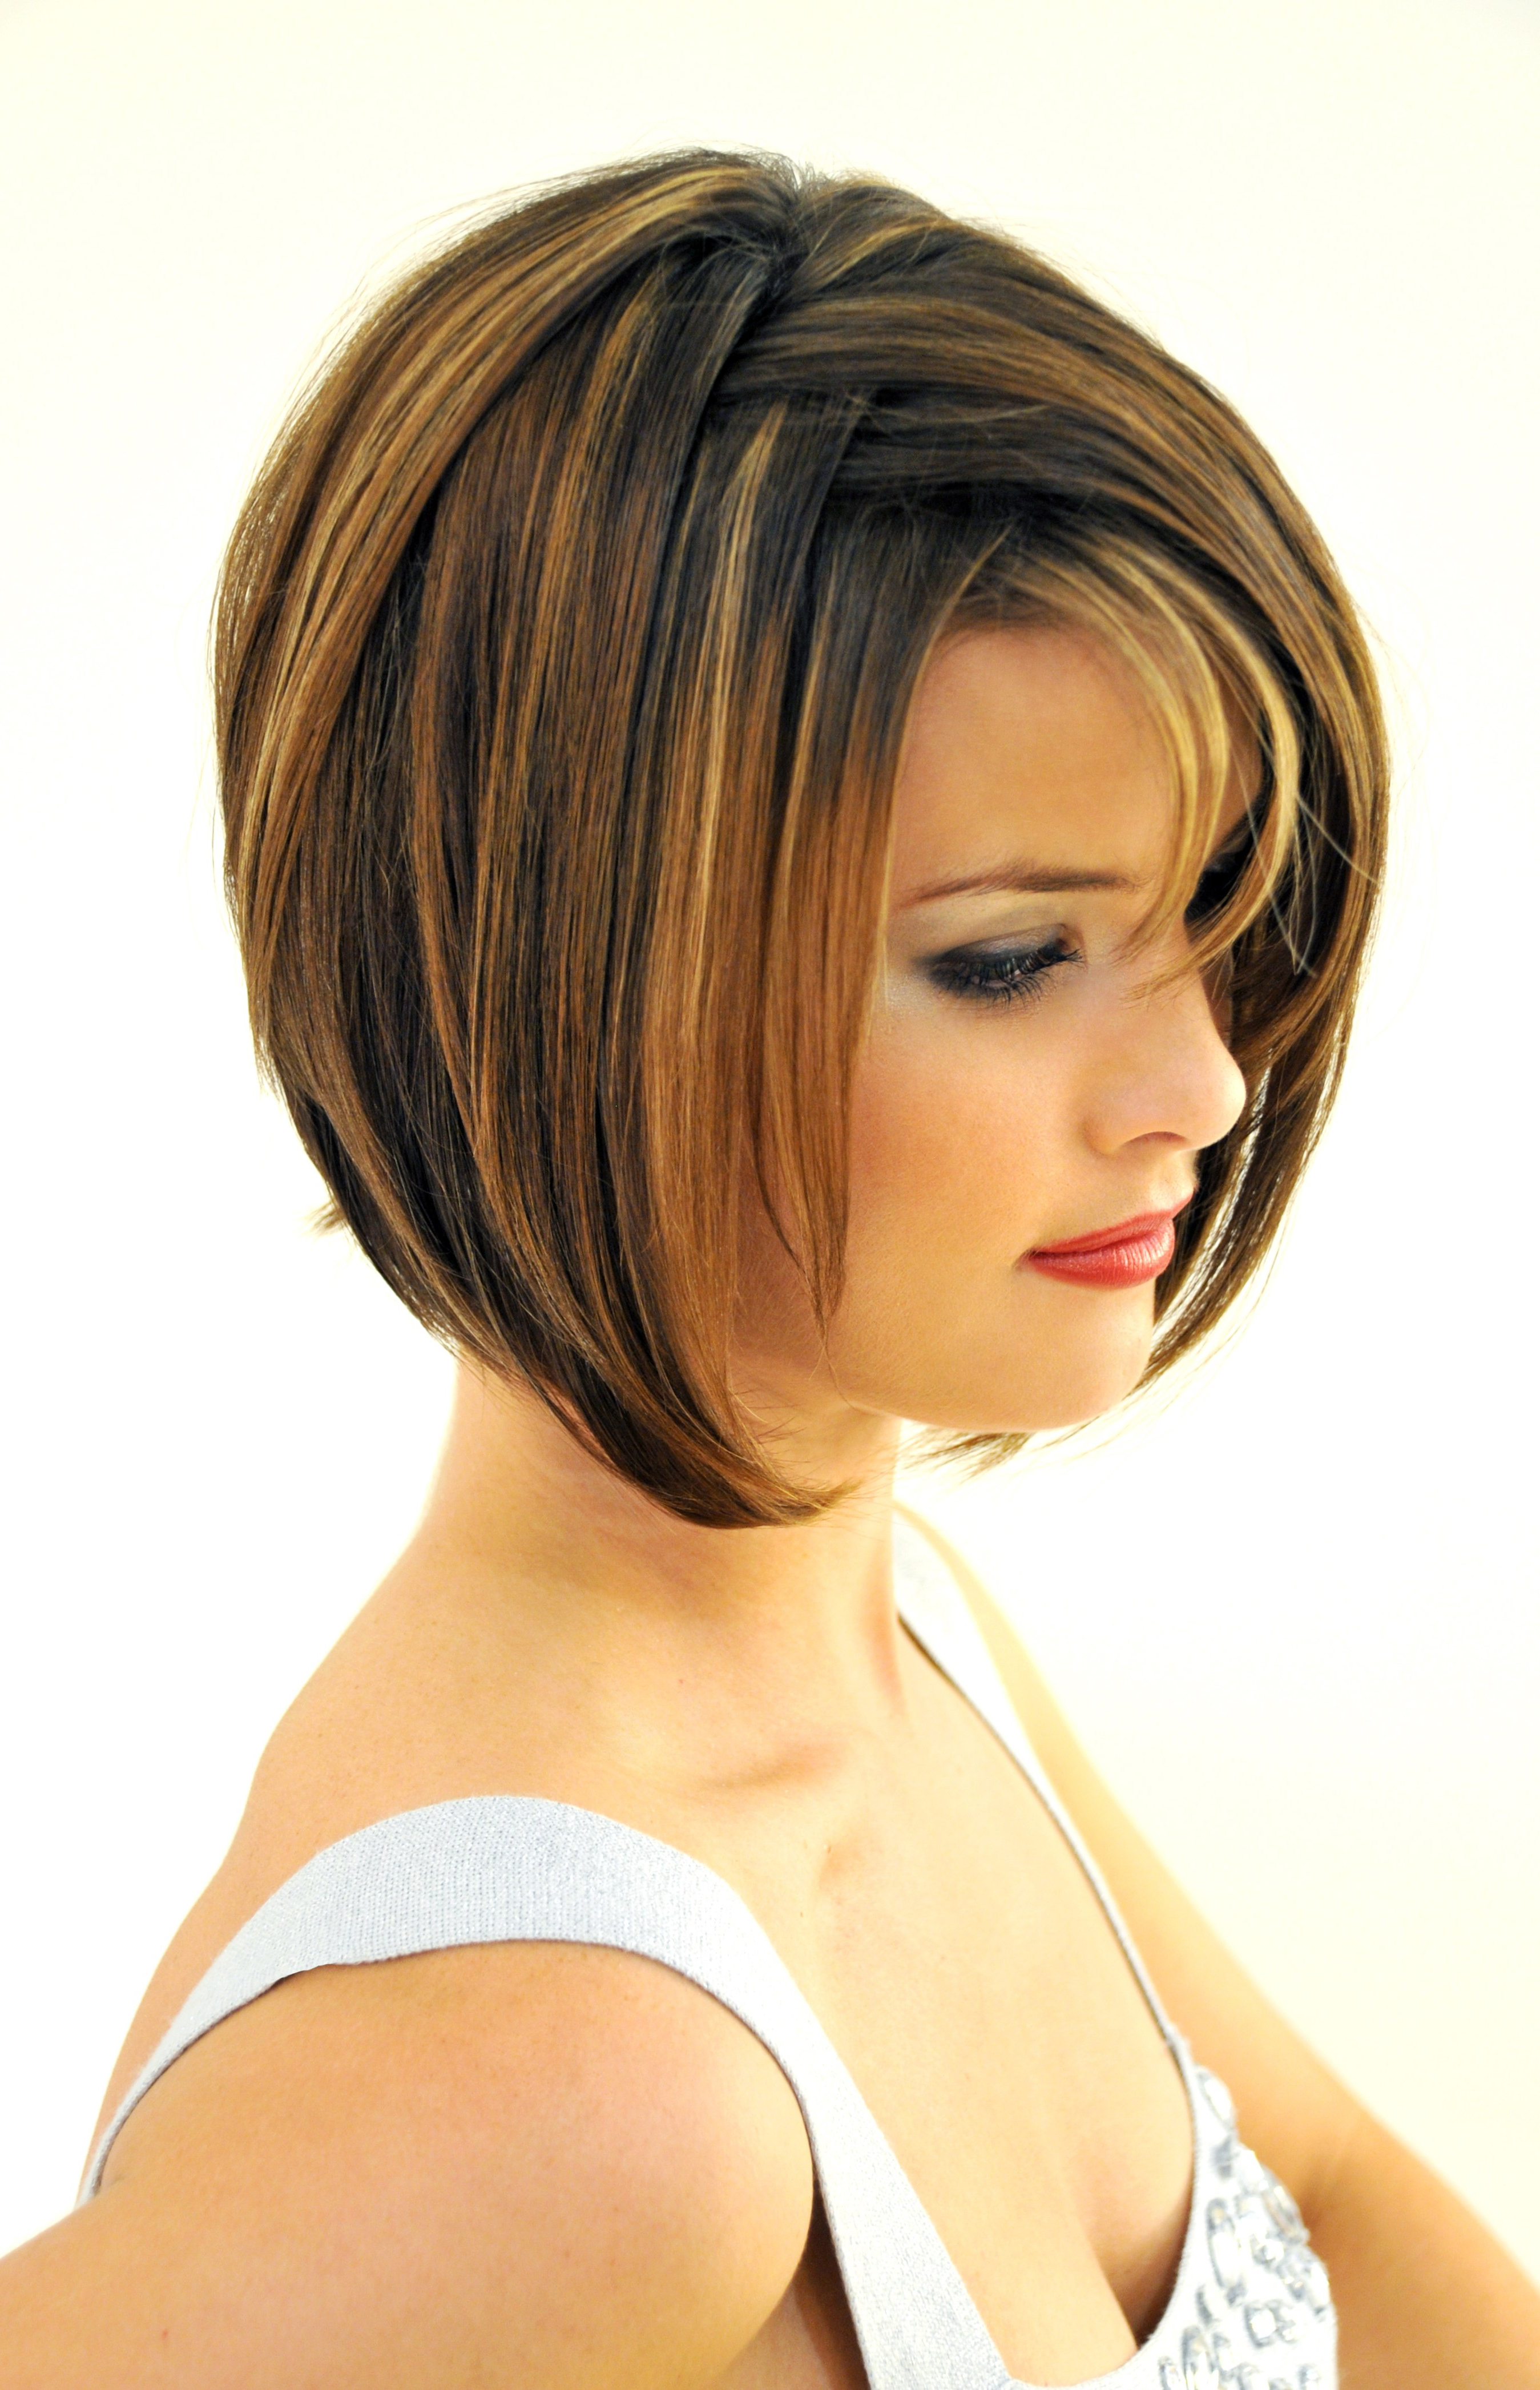 Short Hairstyles With Fringe And Layers – Hairstyle For Women & Man With Layered Short Hairstyles With Bangs (View 5 of 25)